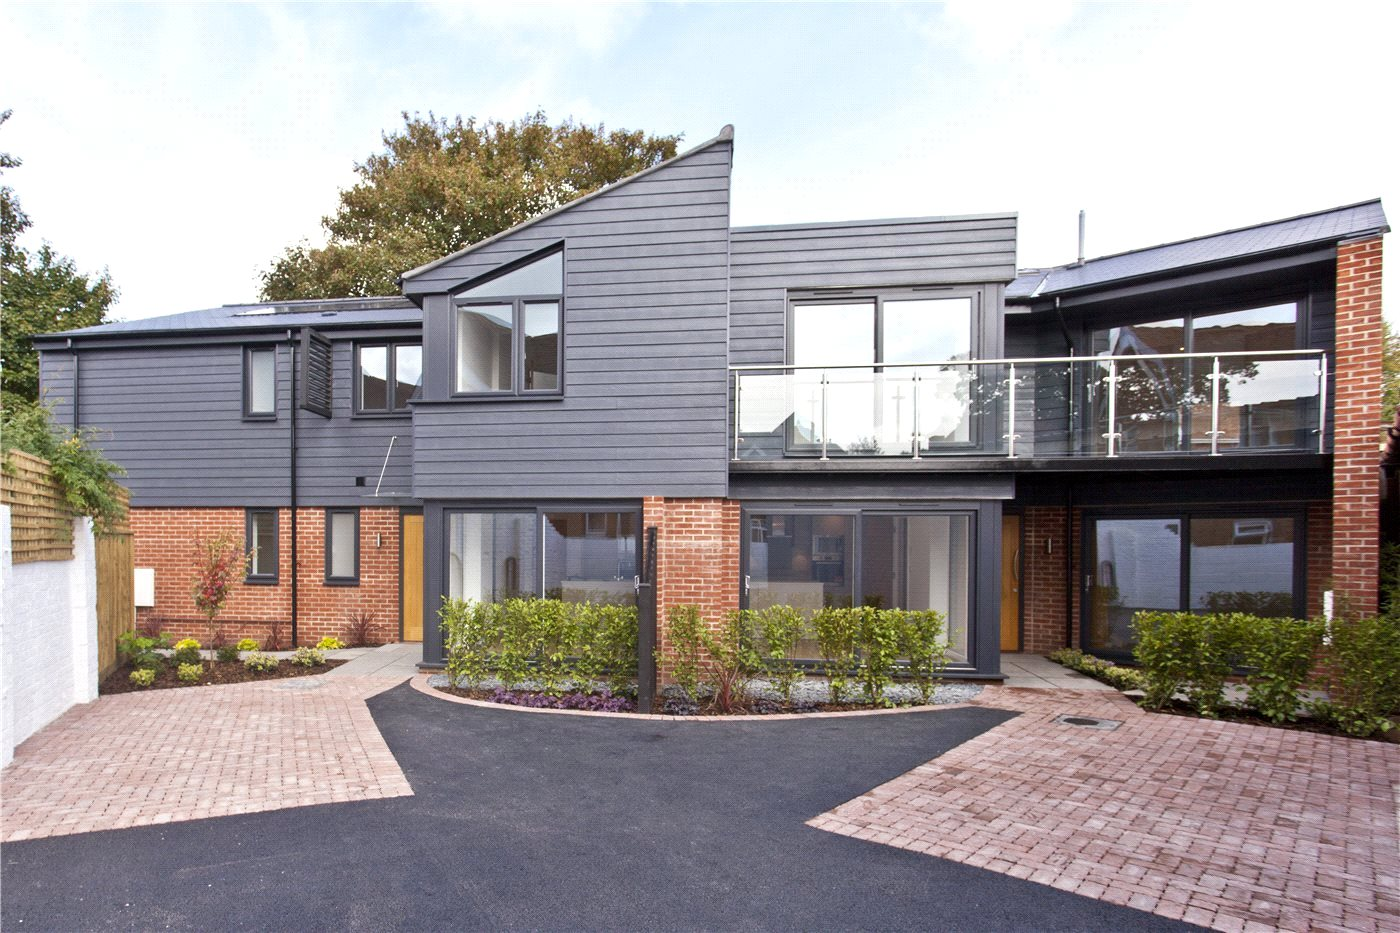 3 Bedrooms Semi Detached House for sale in Parkstone Avenue, Lower Parkstone, Poole, Dorset, BH14